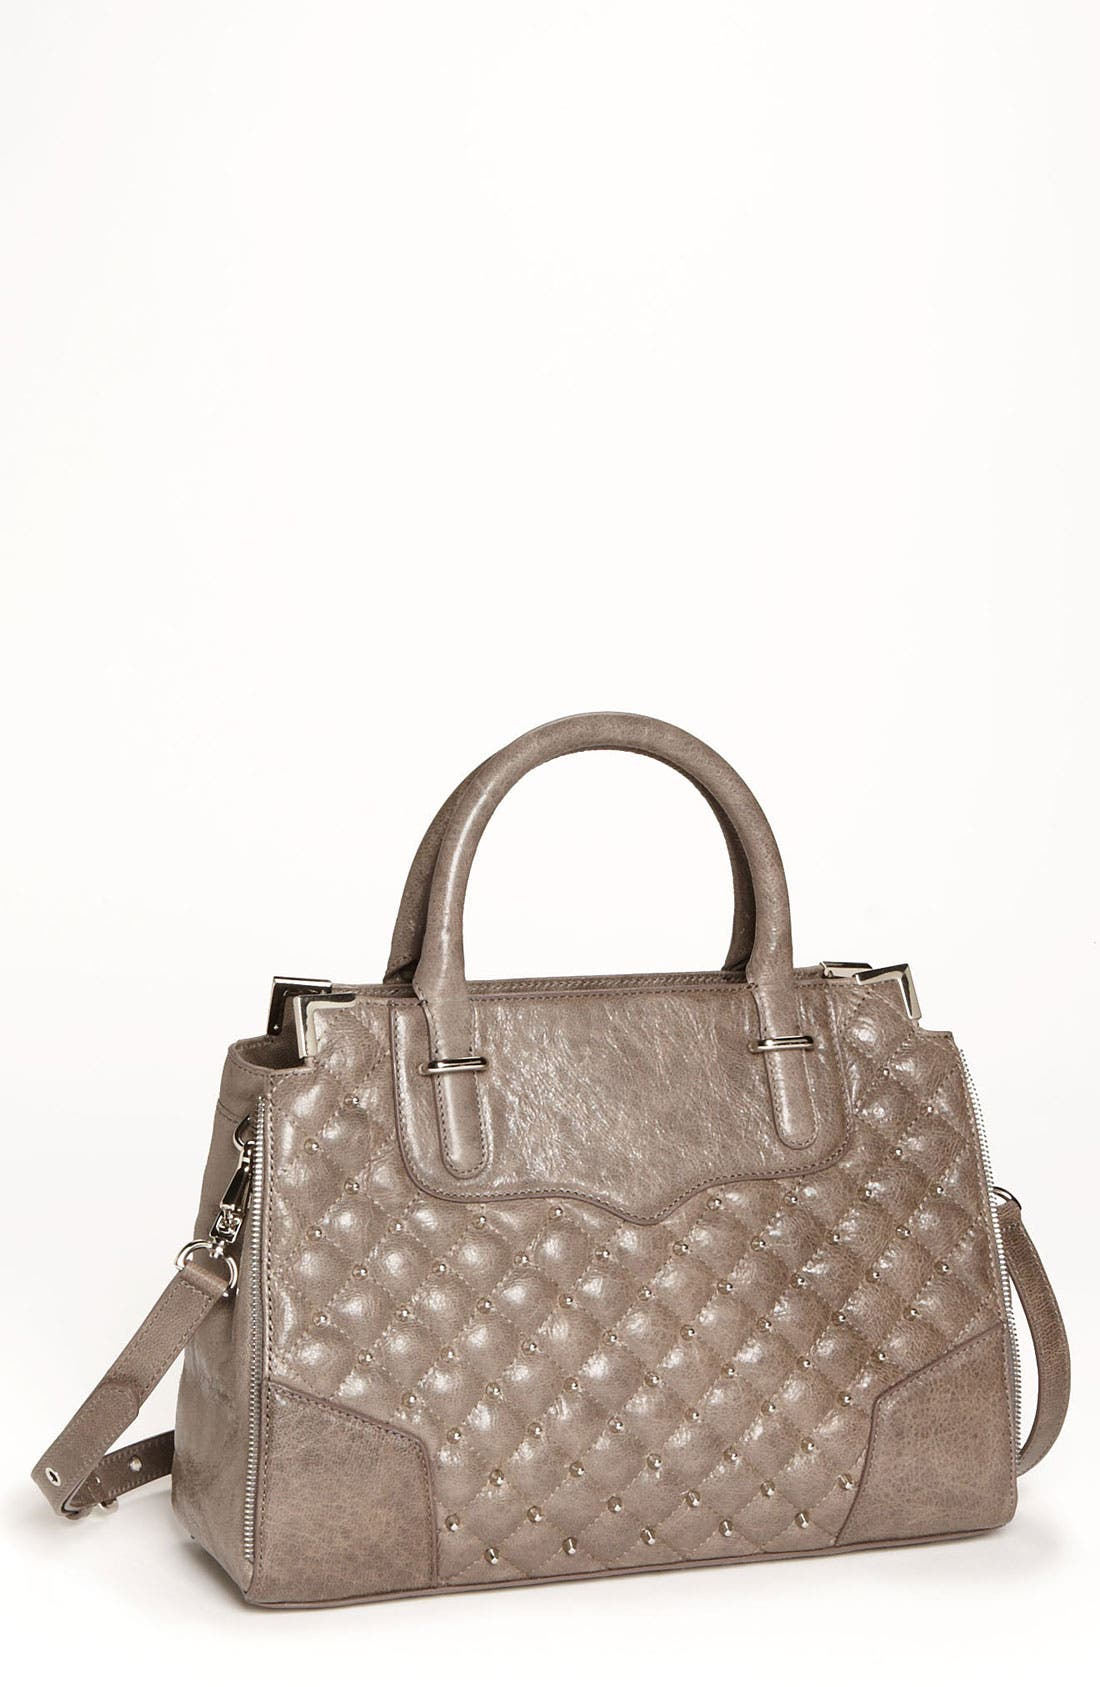 Alternate Image 1 Selected - Rebecca Minkoff 'Amourous' Tote